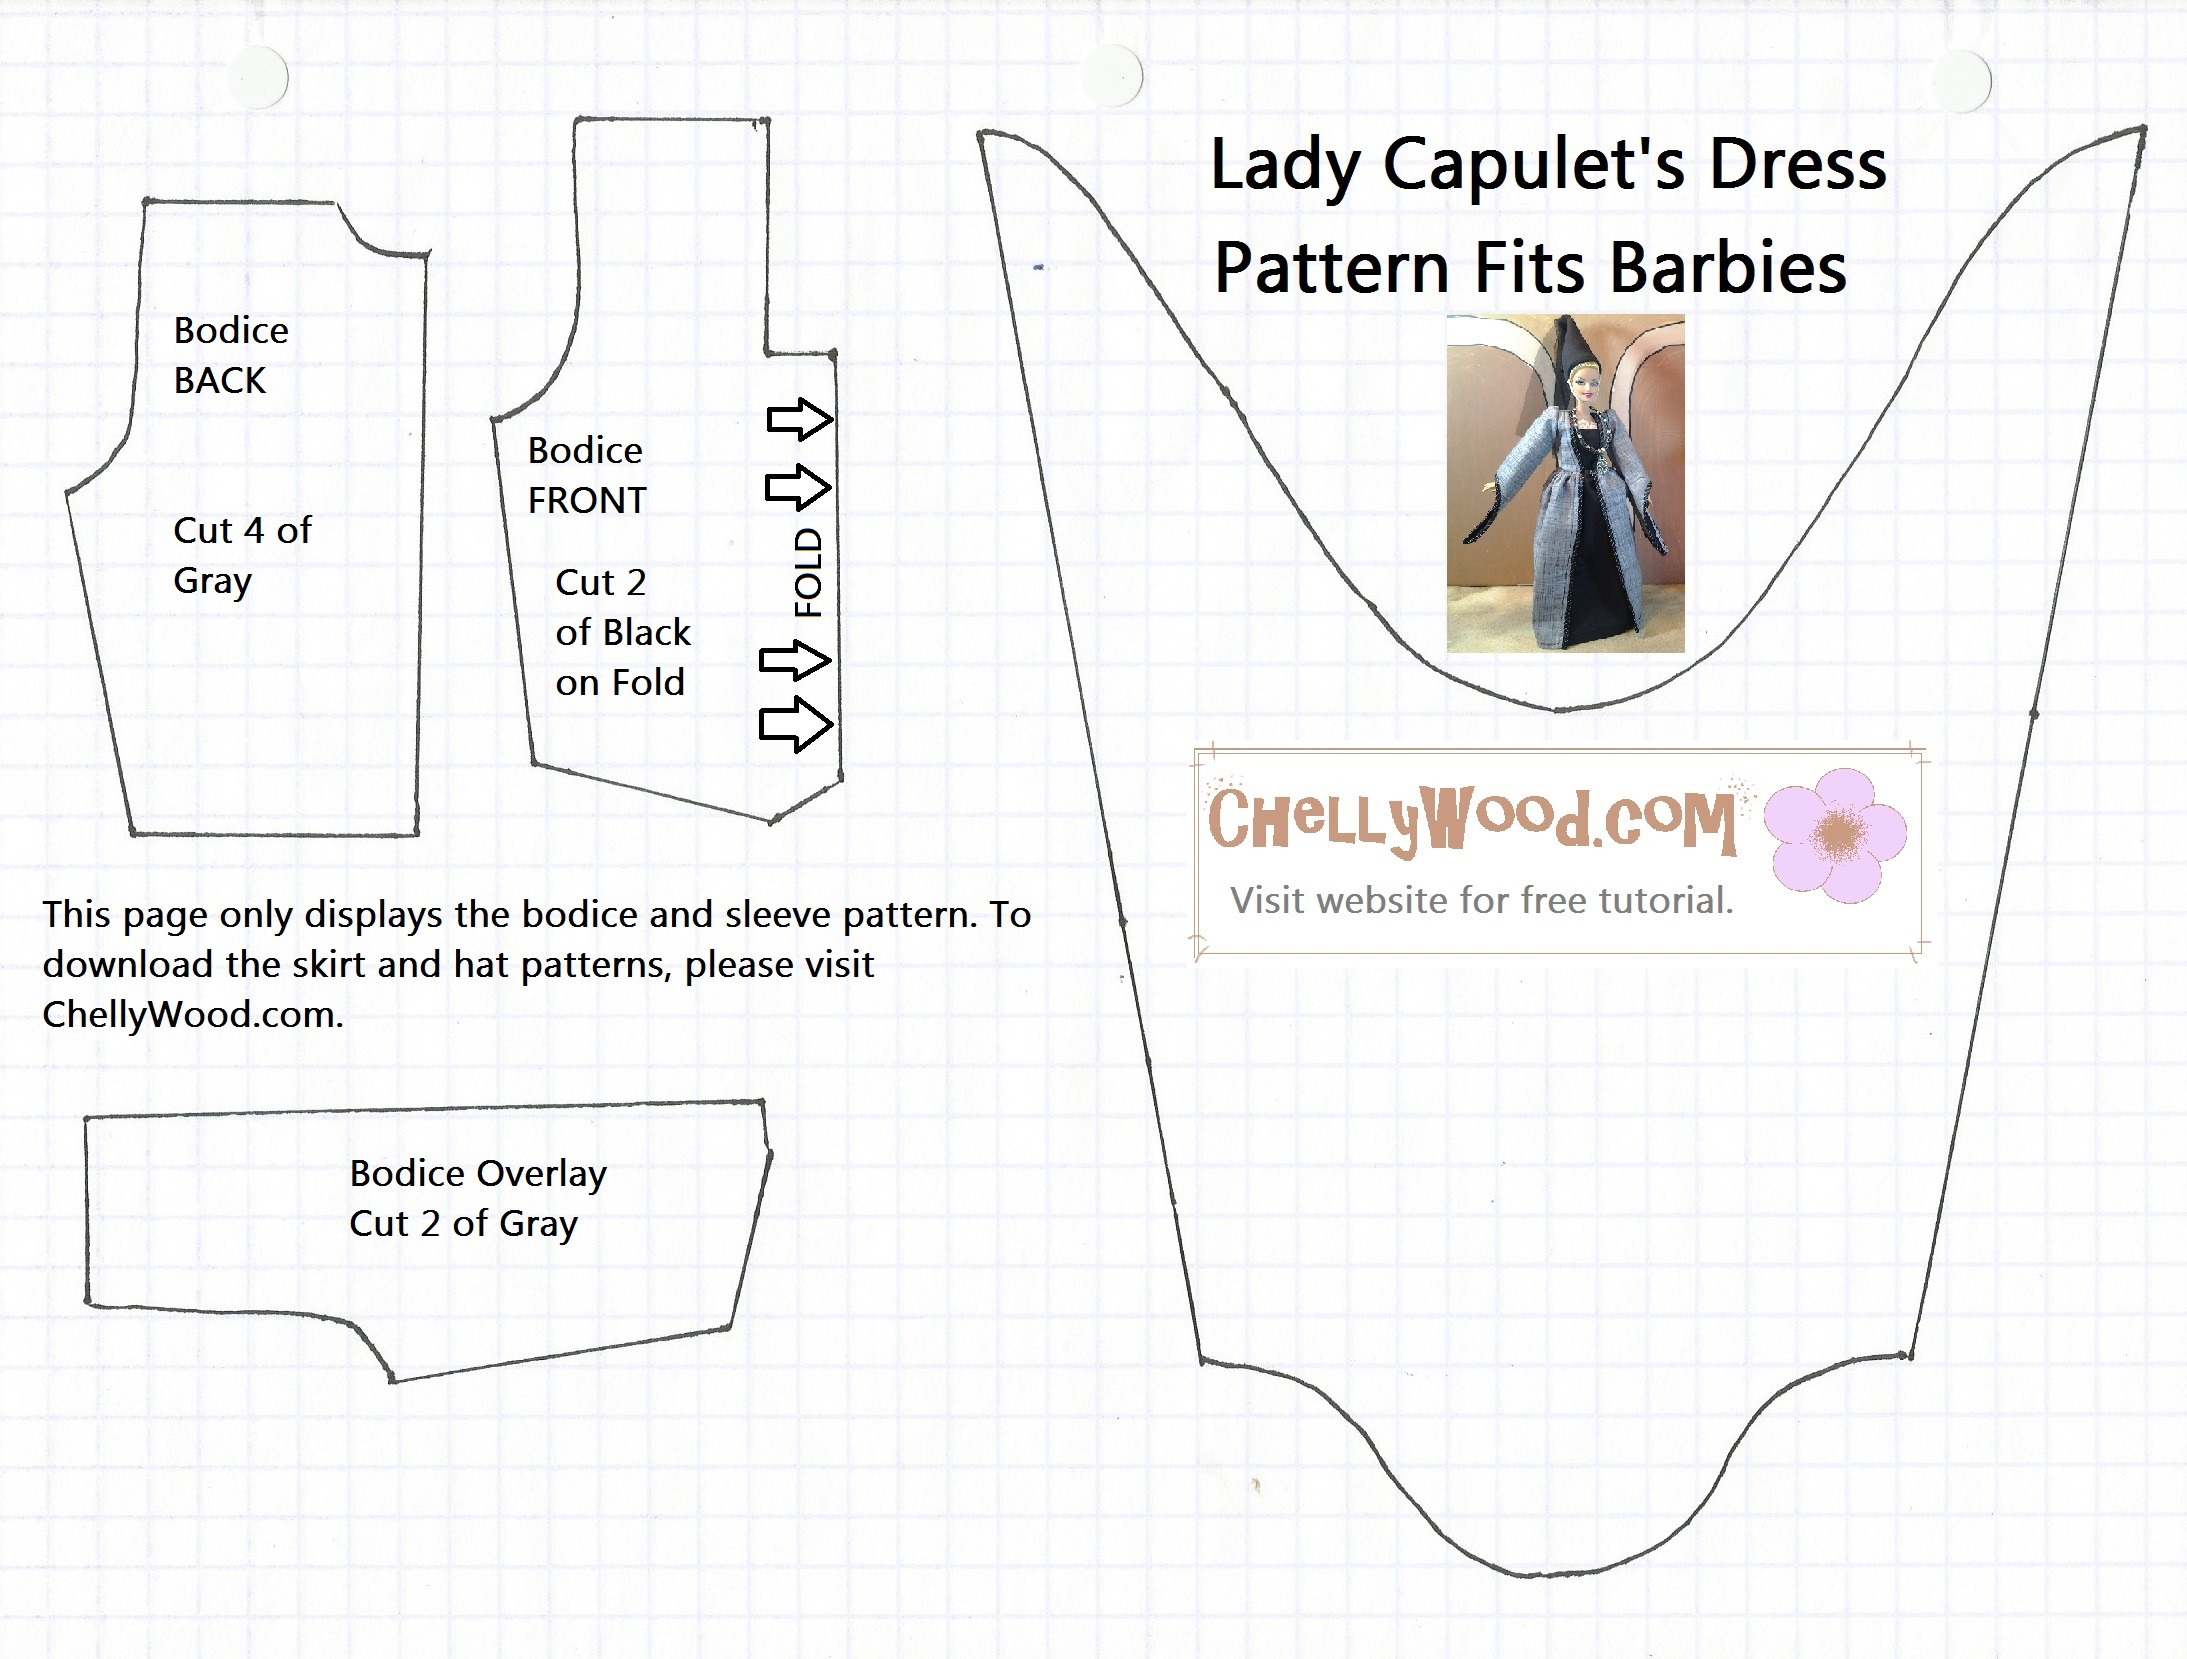 Free Printable Barbie Doll Clothes Patterns – Chellywood - Barbie Dress Patterns Free Printable Pdf